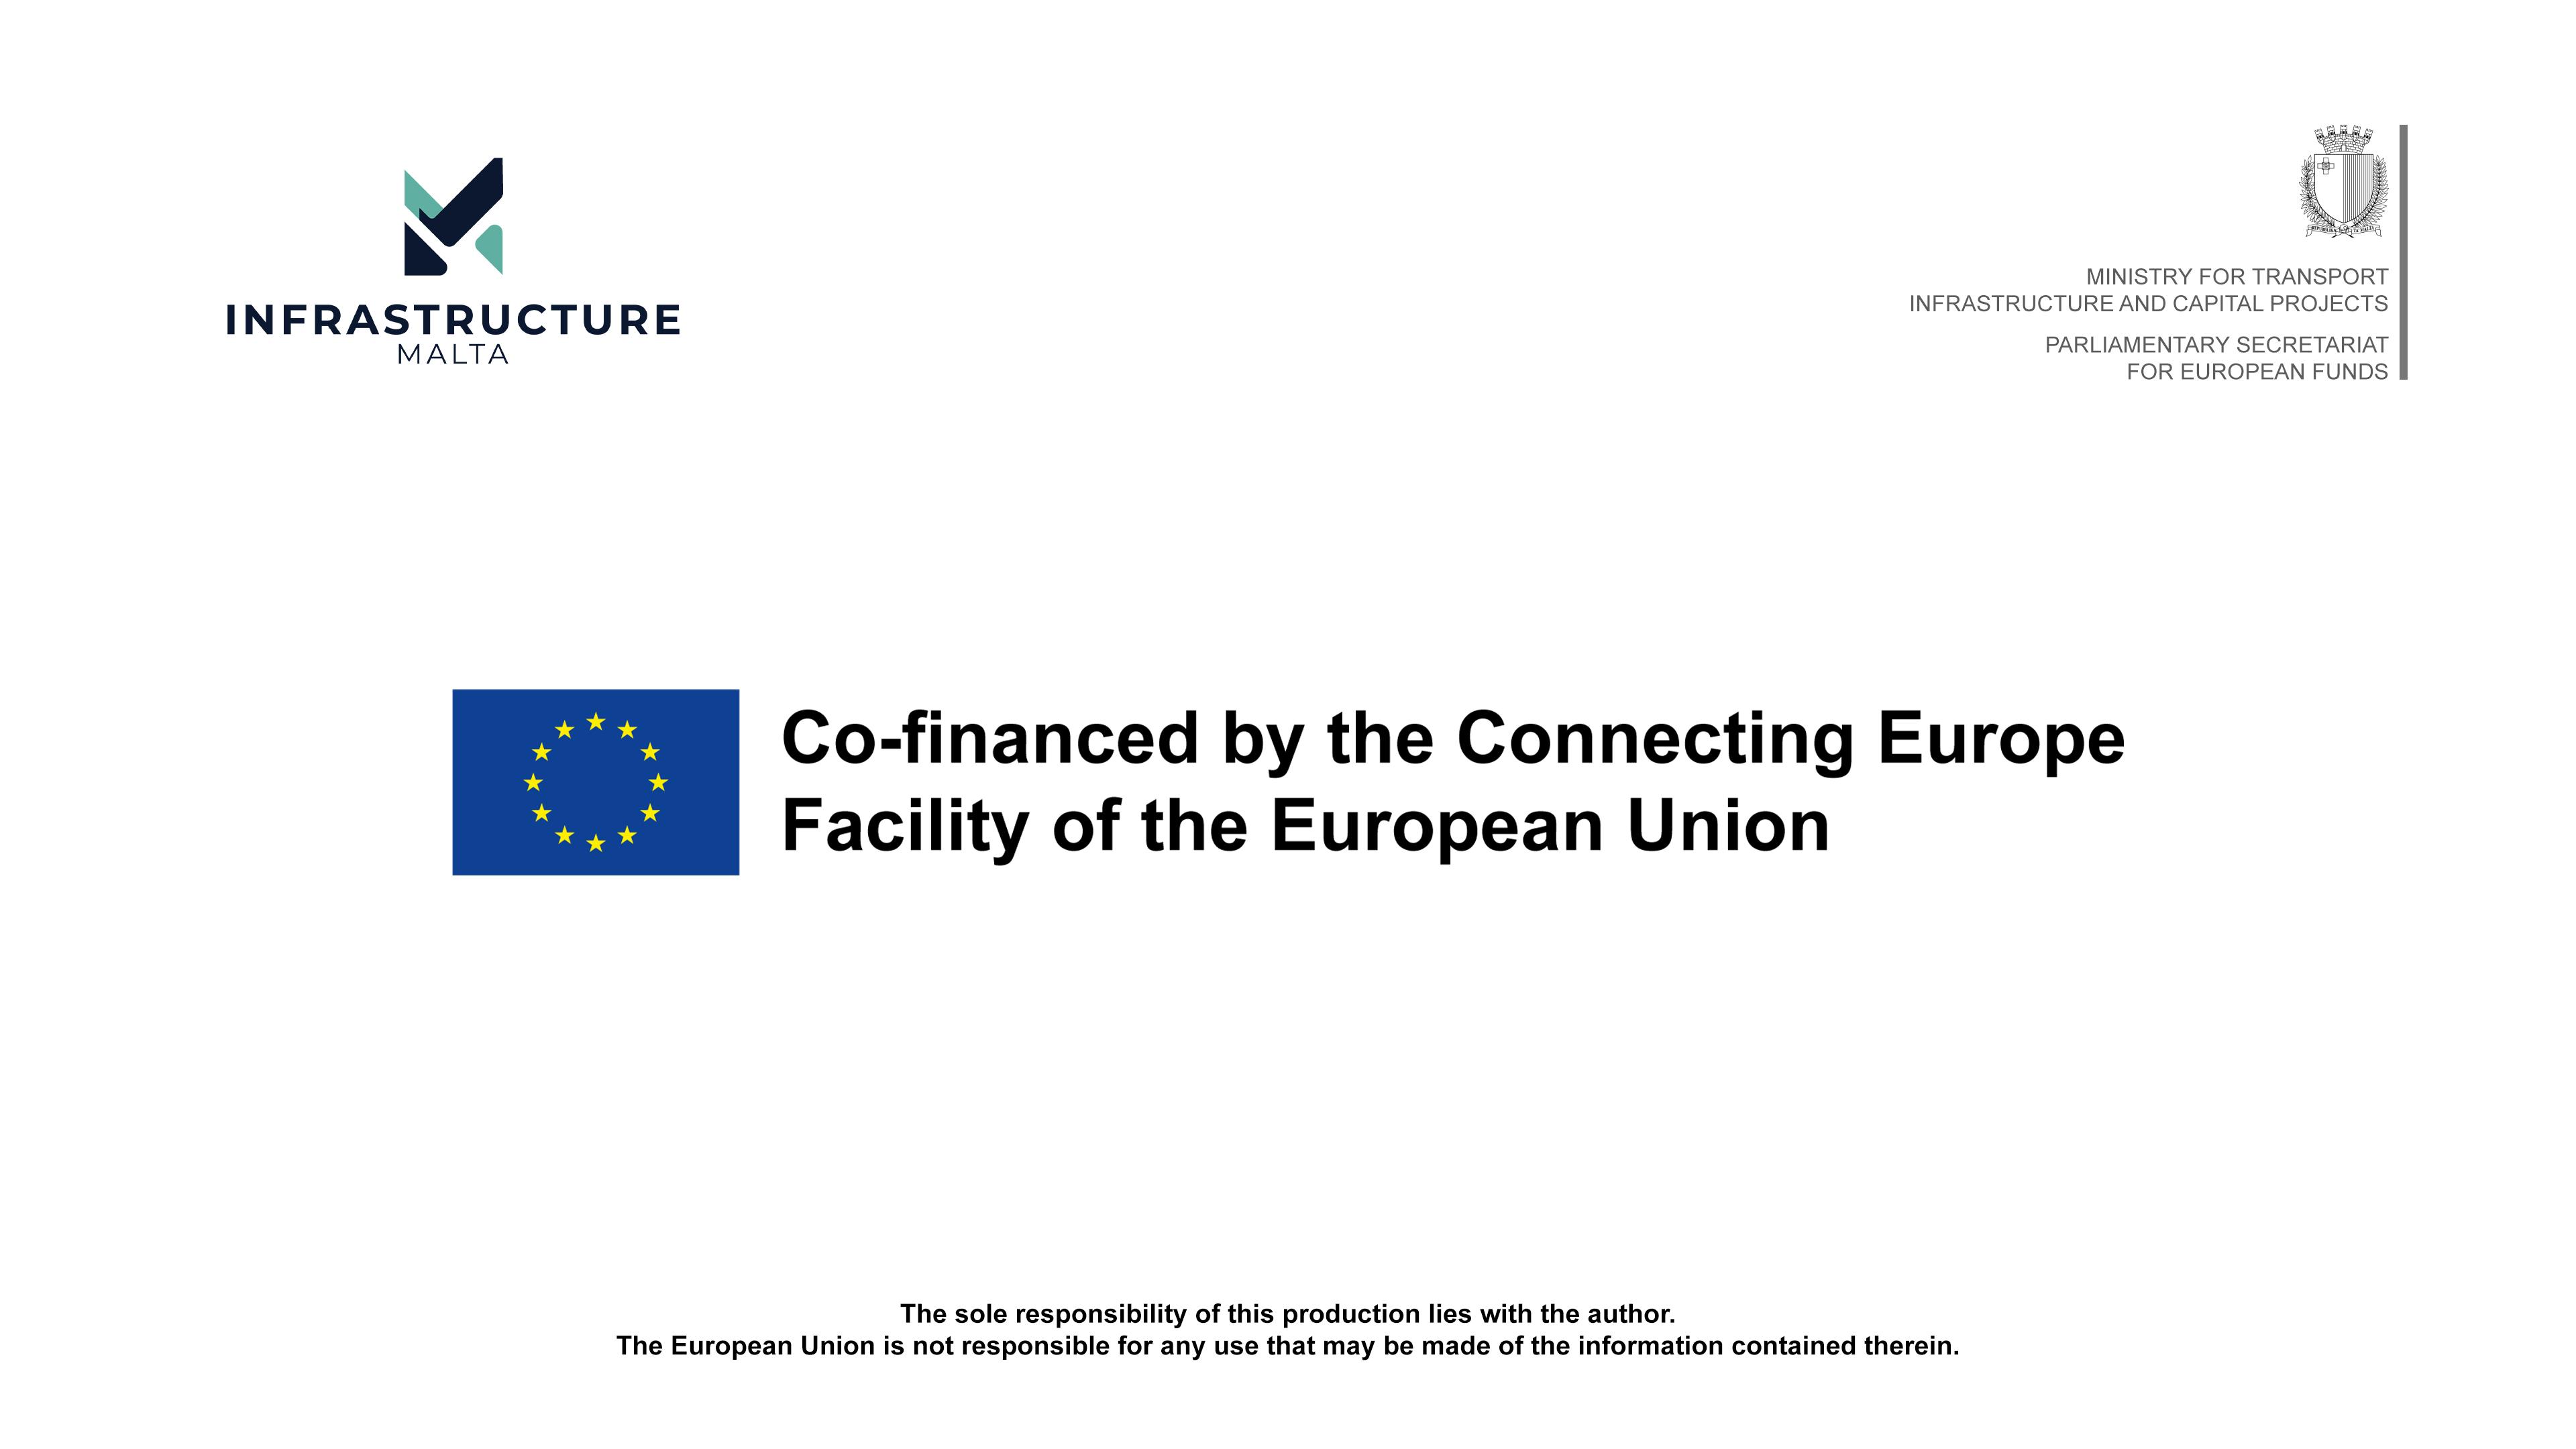 Project co-financed by the Connecting Europe Facility of the European Union